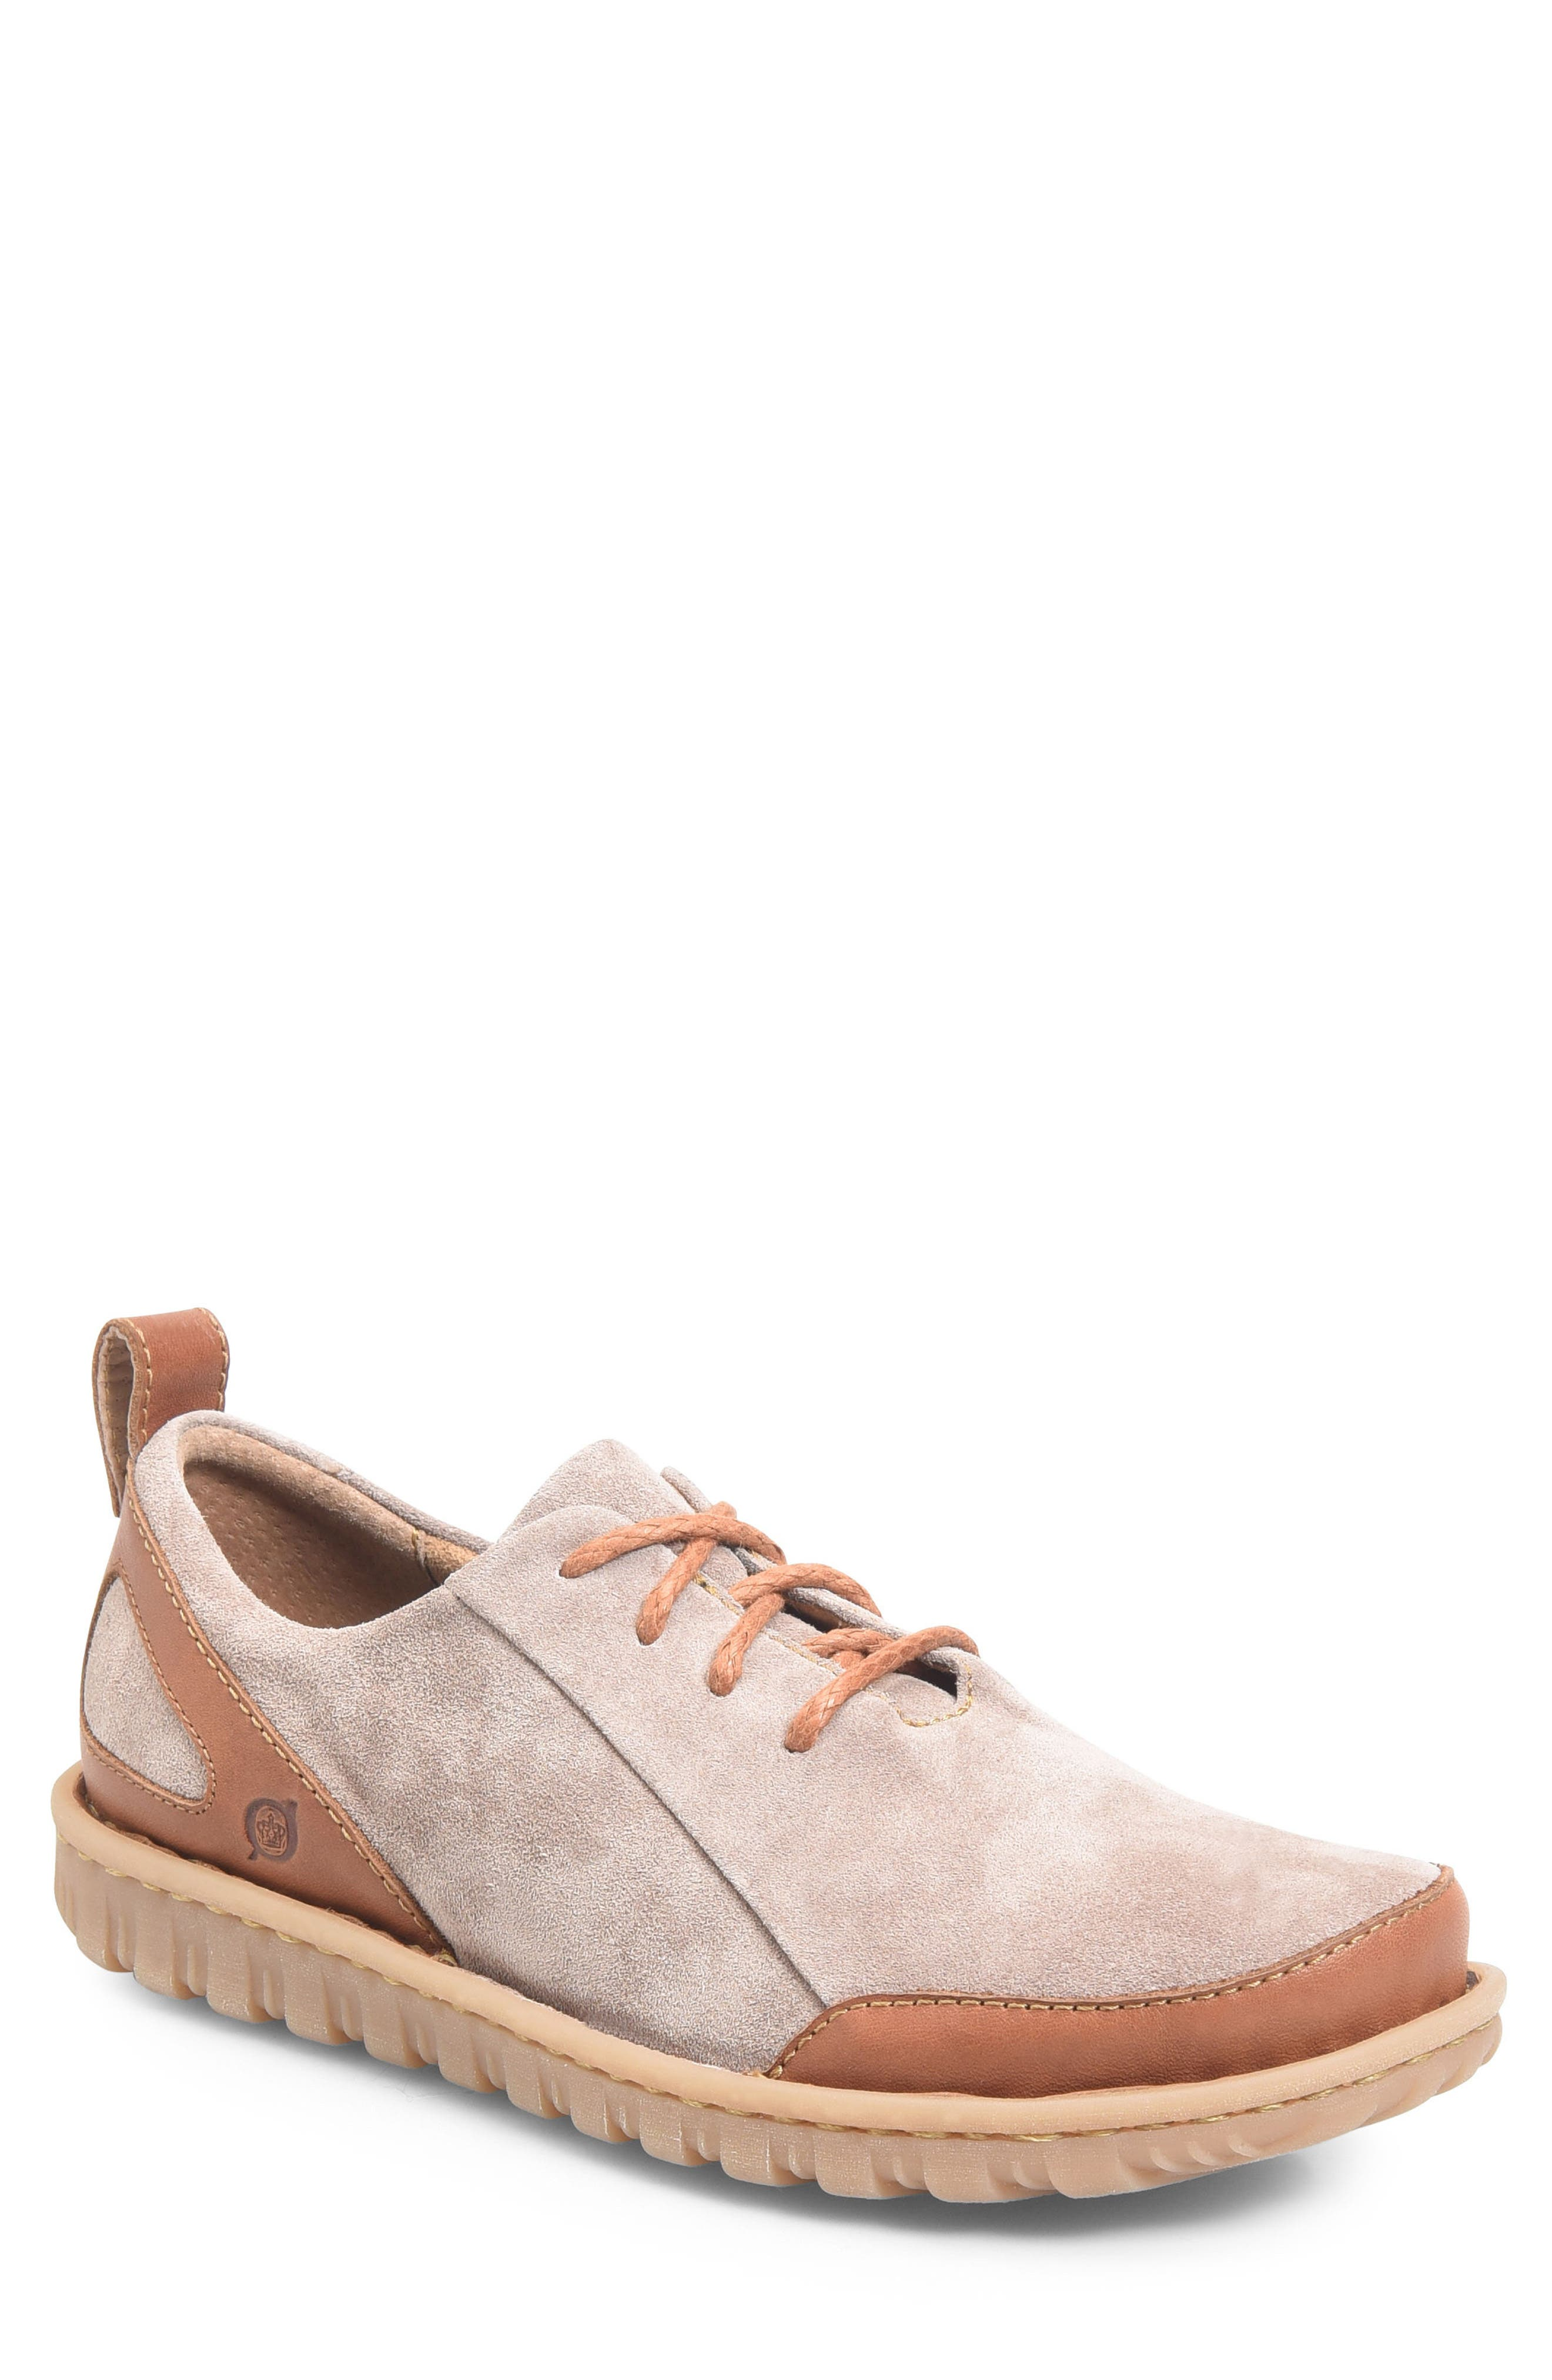 Piper Plain Toe Derby,                             Main thumbnail 1, color,                             Grey/ Bronze Leather